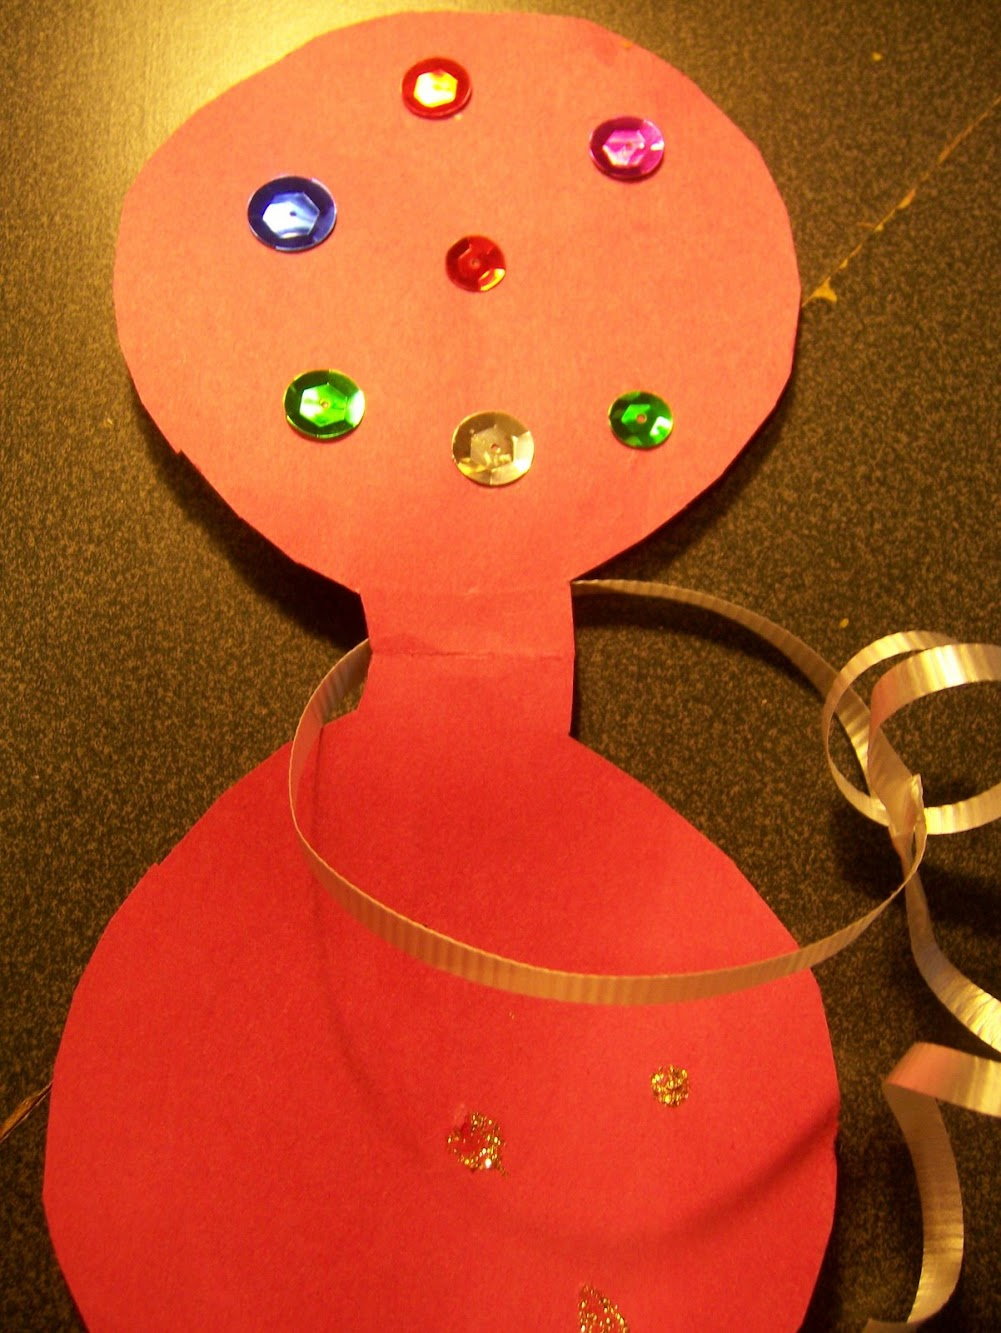 A Christmas Craft for Preschoolers